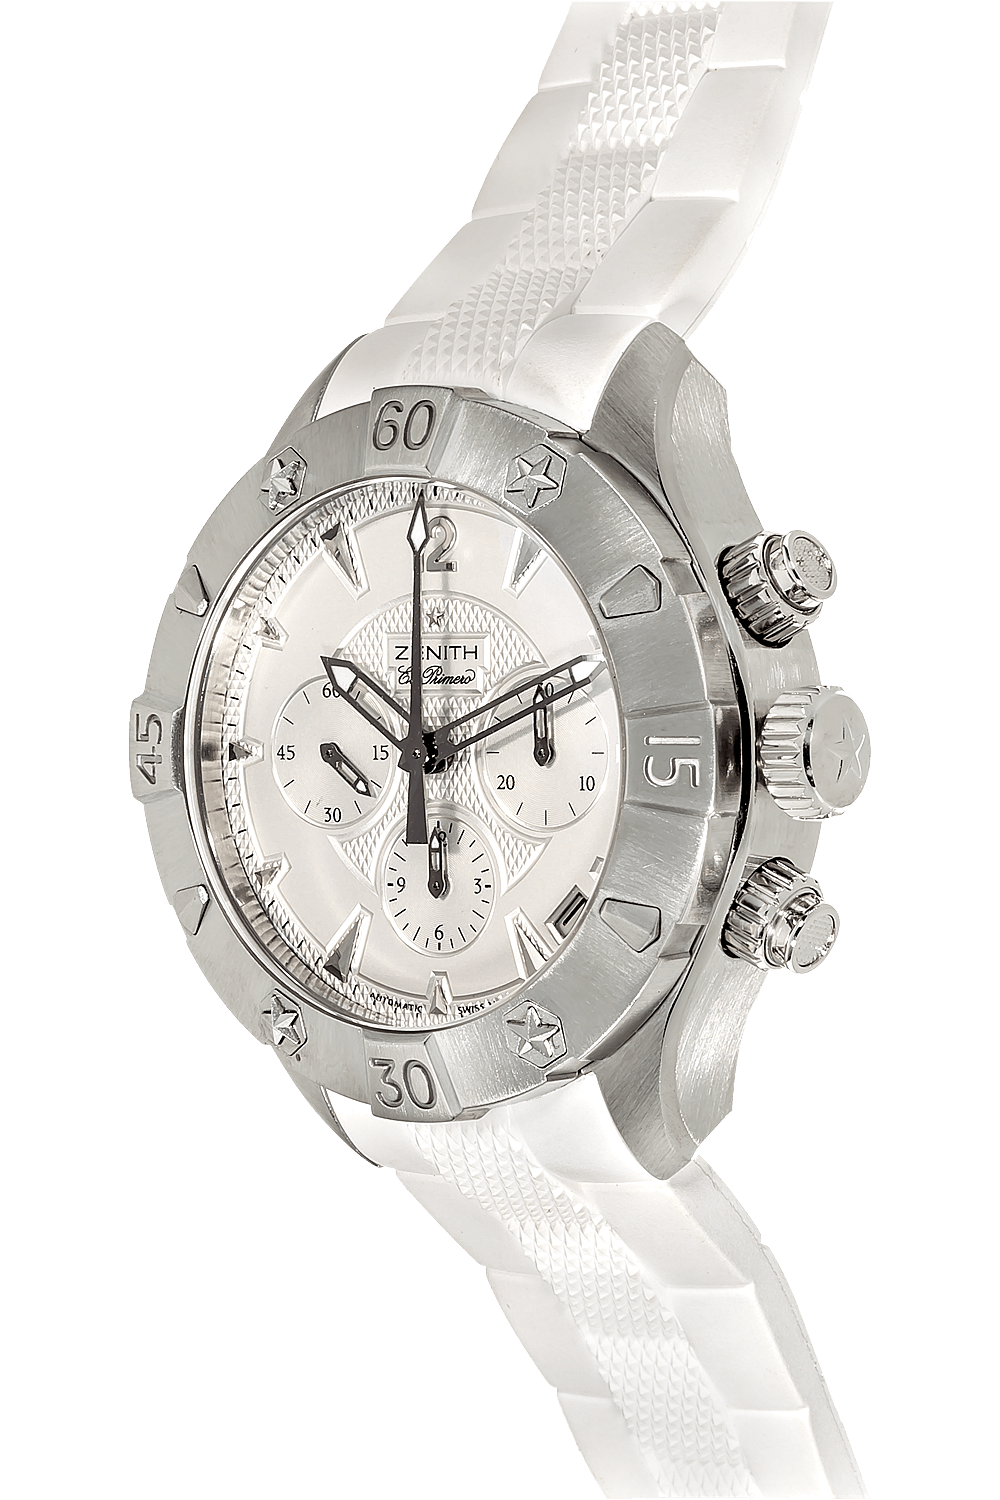 98df2424fe6 ... Defy Classic El Primero Chronograph Stainless Steel Automatic ...